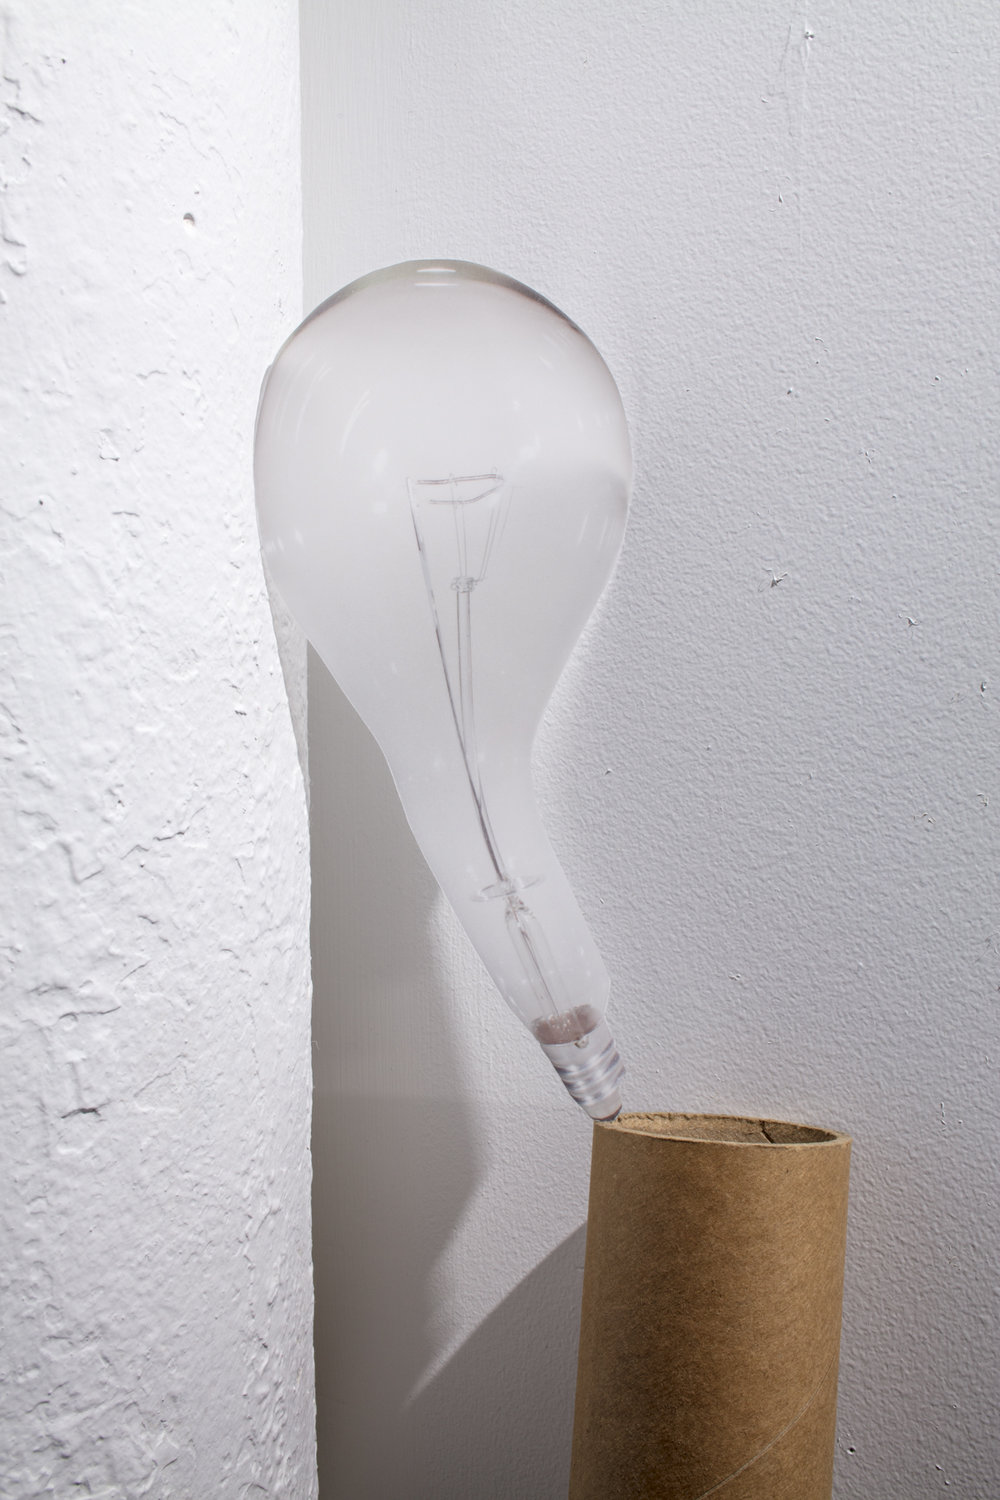 lightbulb-leaning-1.jpg